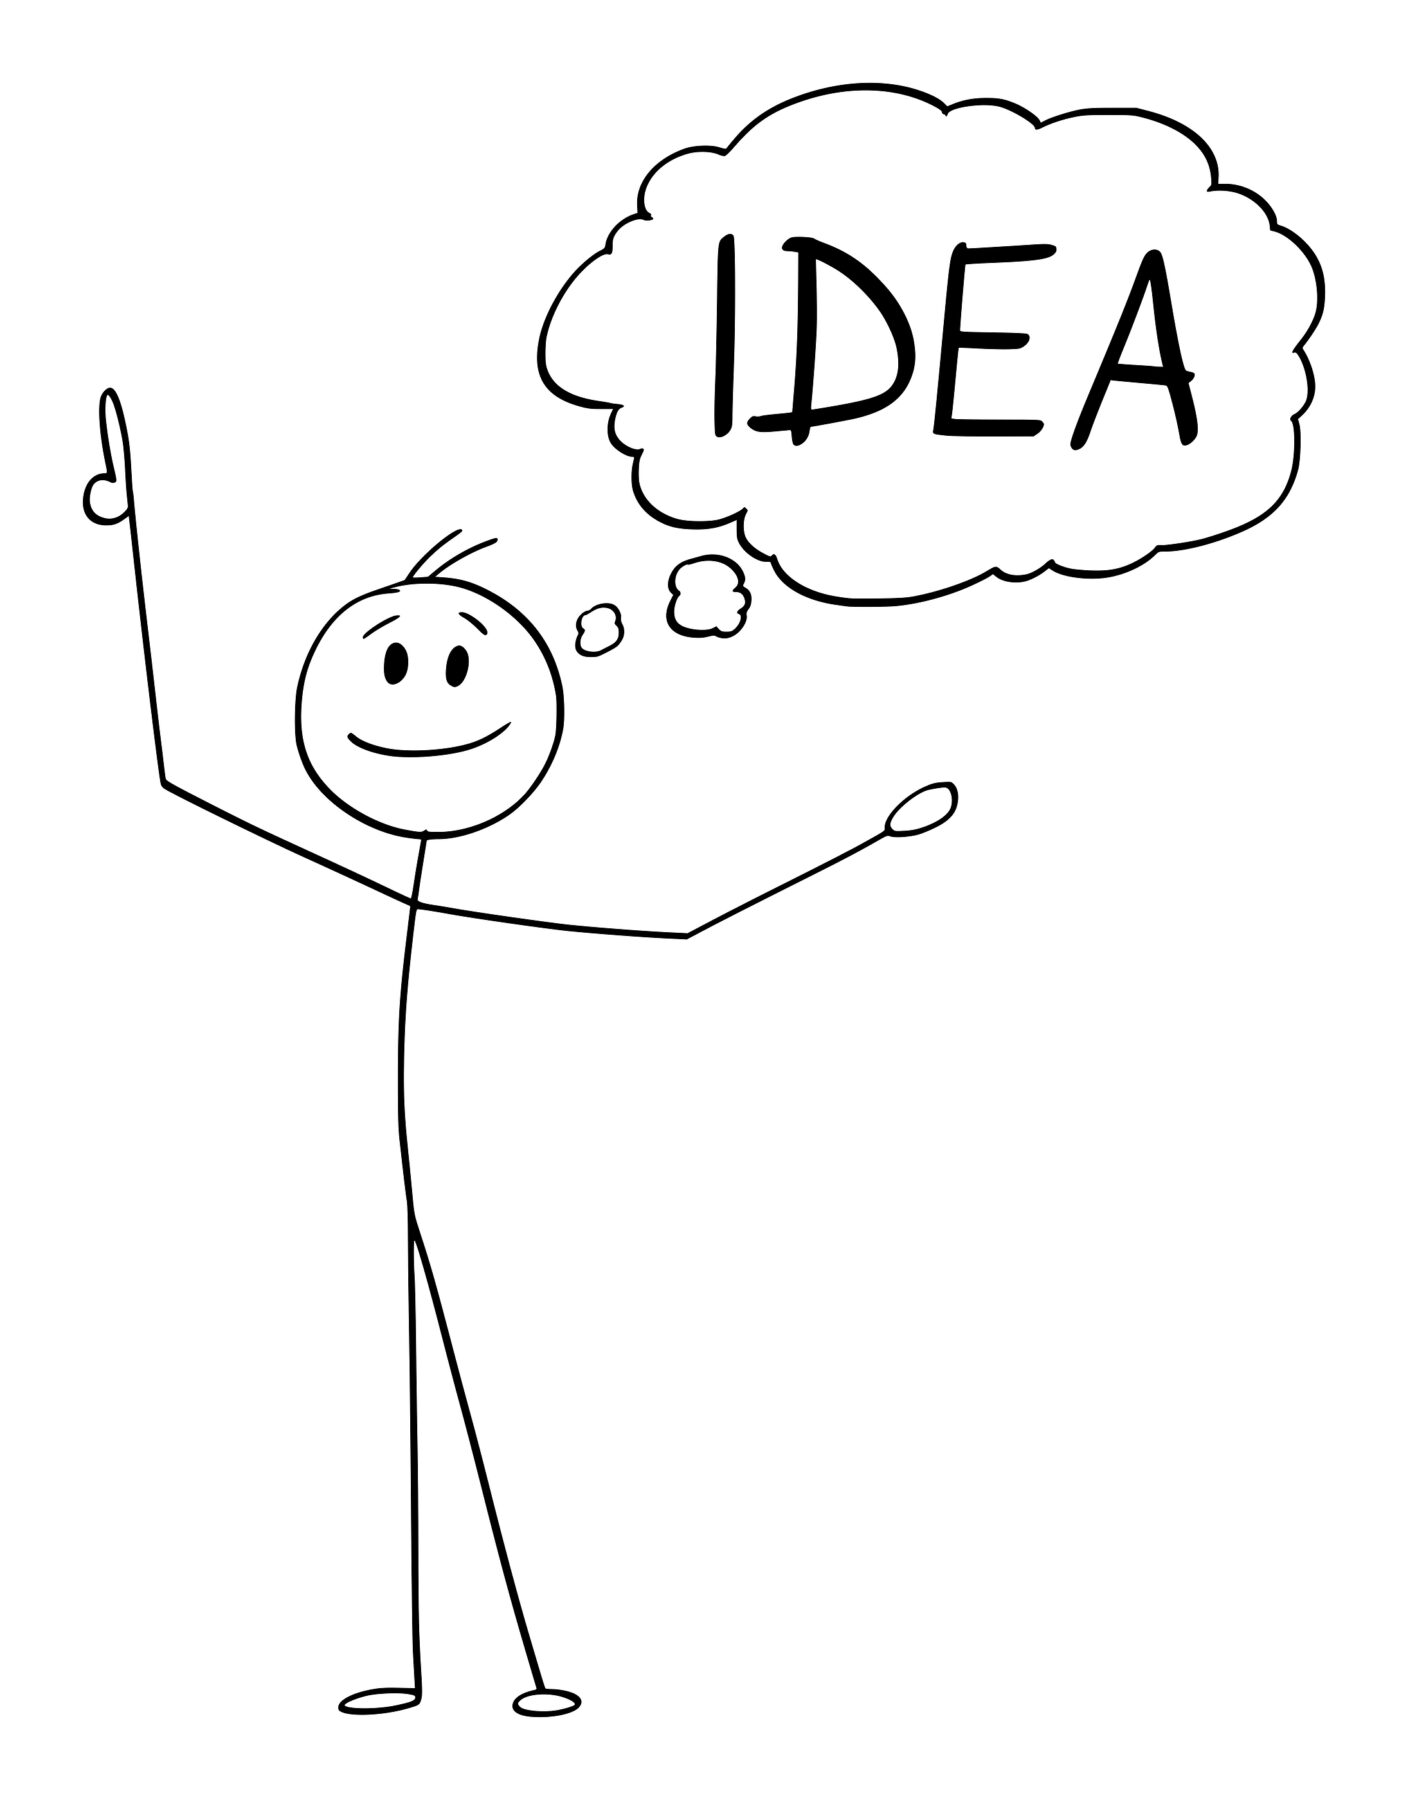 Cartoon stick figure drawing conceptual illustration of happy smiling man or businessman who just got an idea.